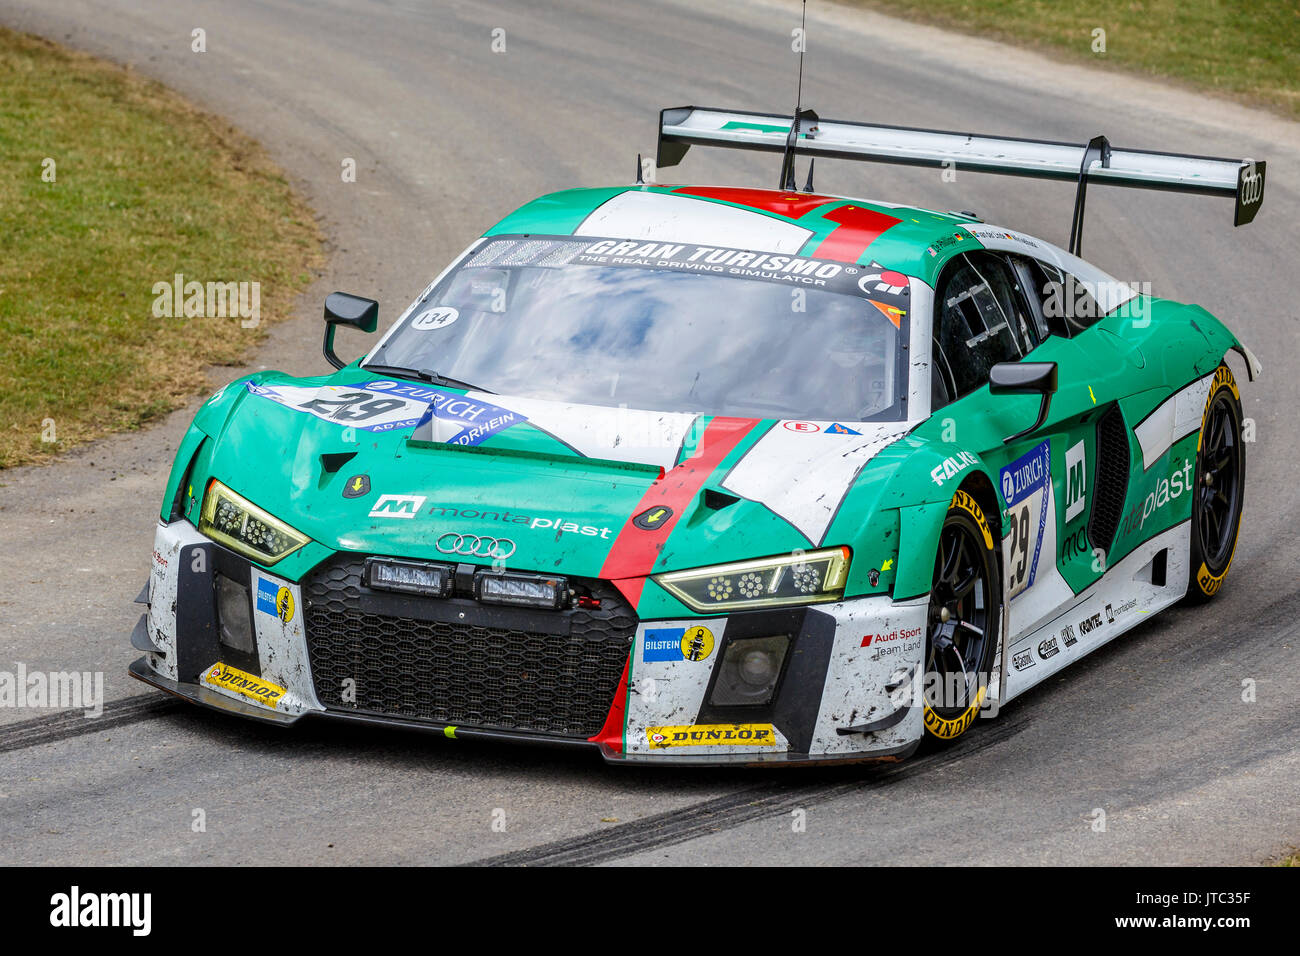 audi le mans stock photos audi le mans stock images alamy. Black Bedroom Furniture Sets. Home Design Ideas